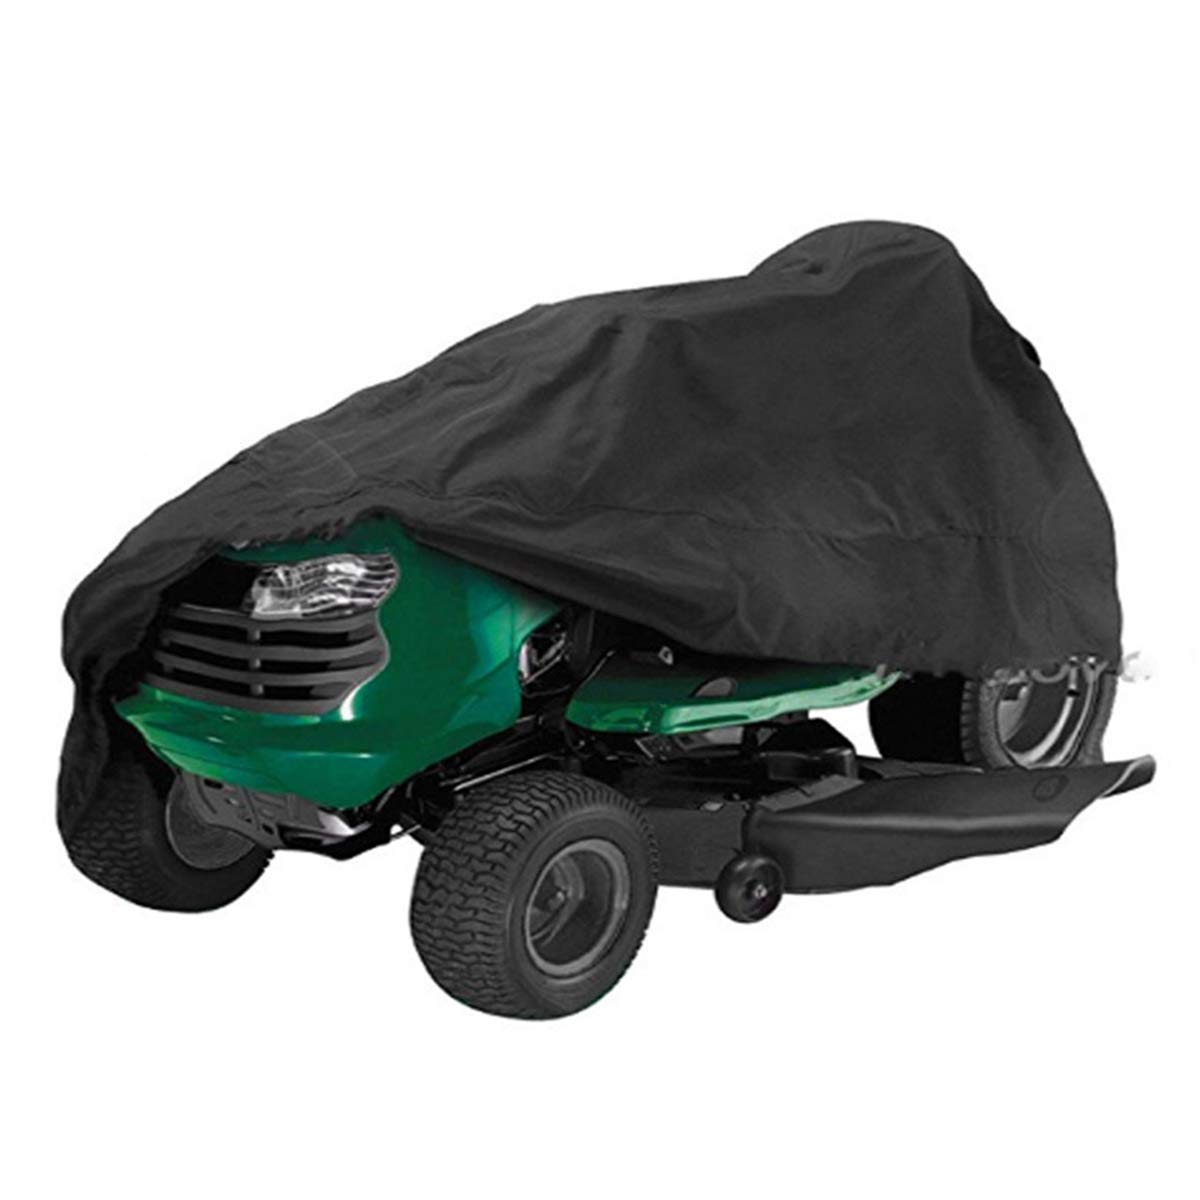 Queenbox Lawn Mower Cover for Riding Lawn Tractor by Heavy Duty 210D Polyester Oxford, UV Protection Waterproof Cover, M